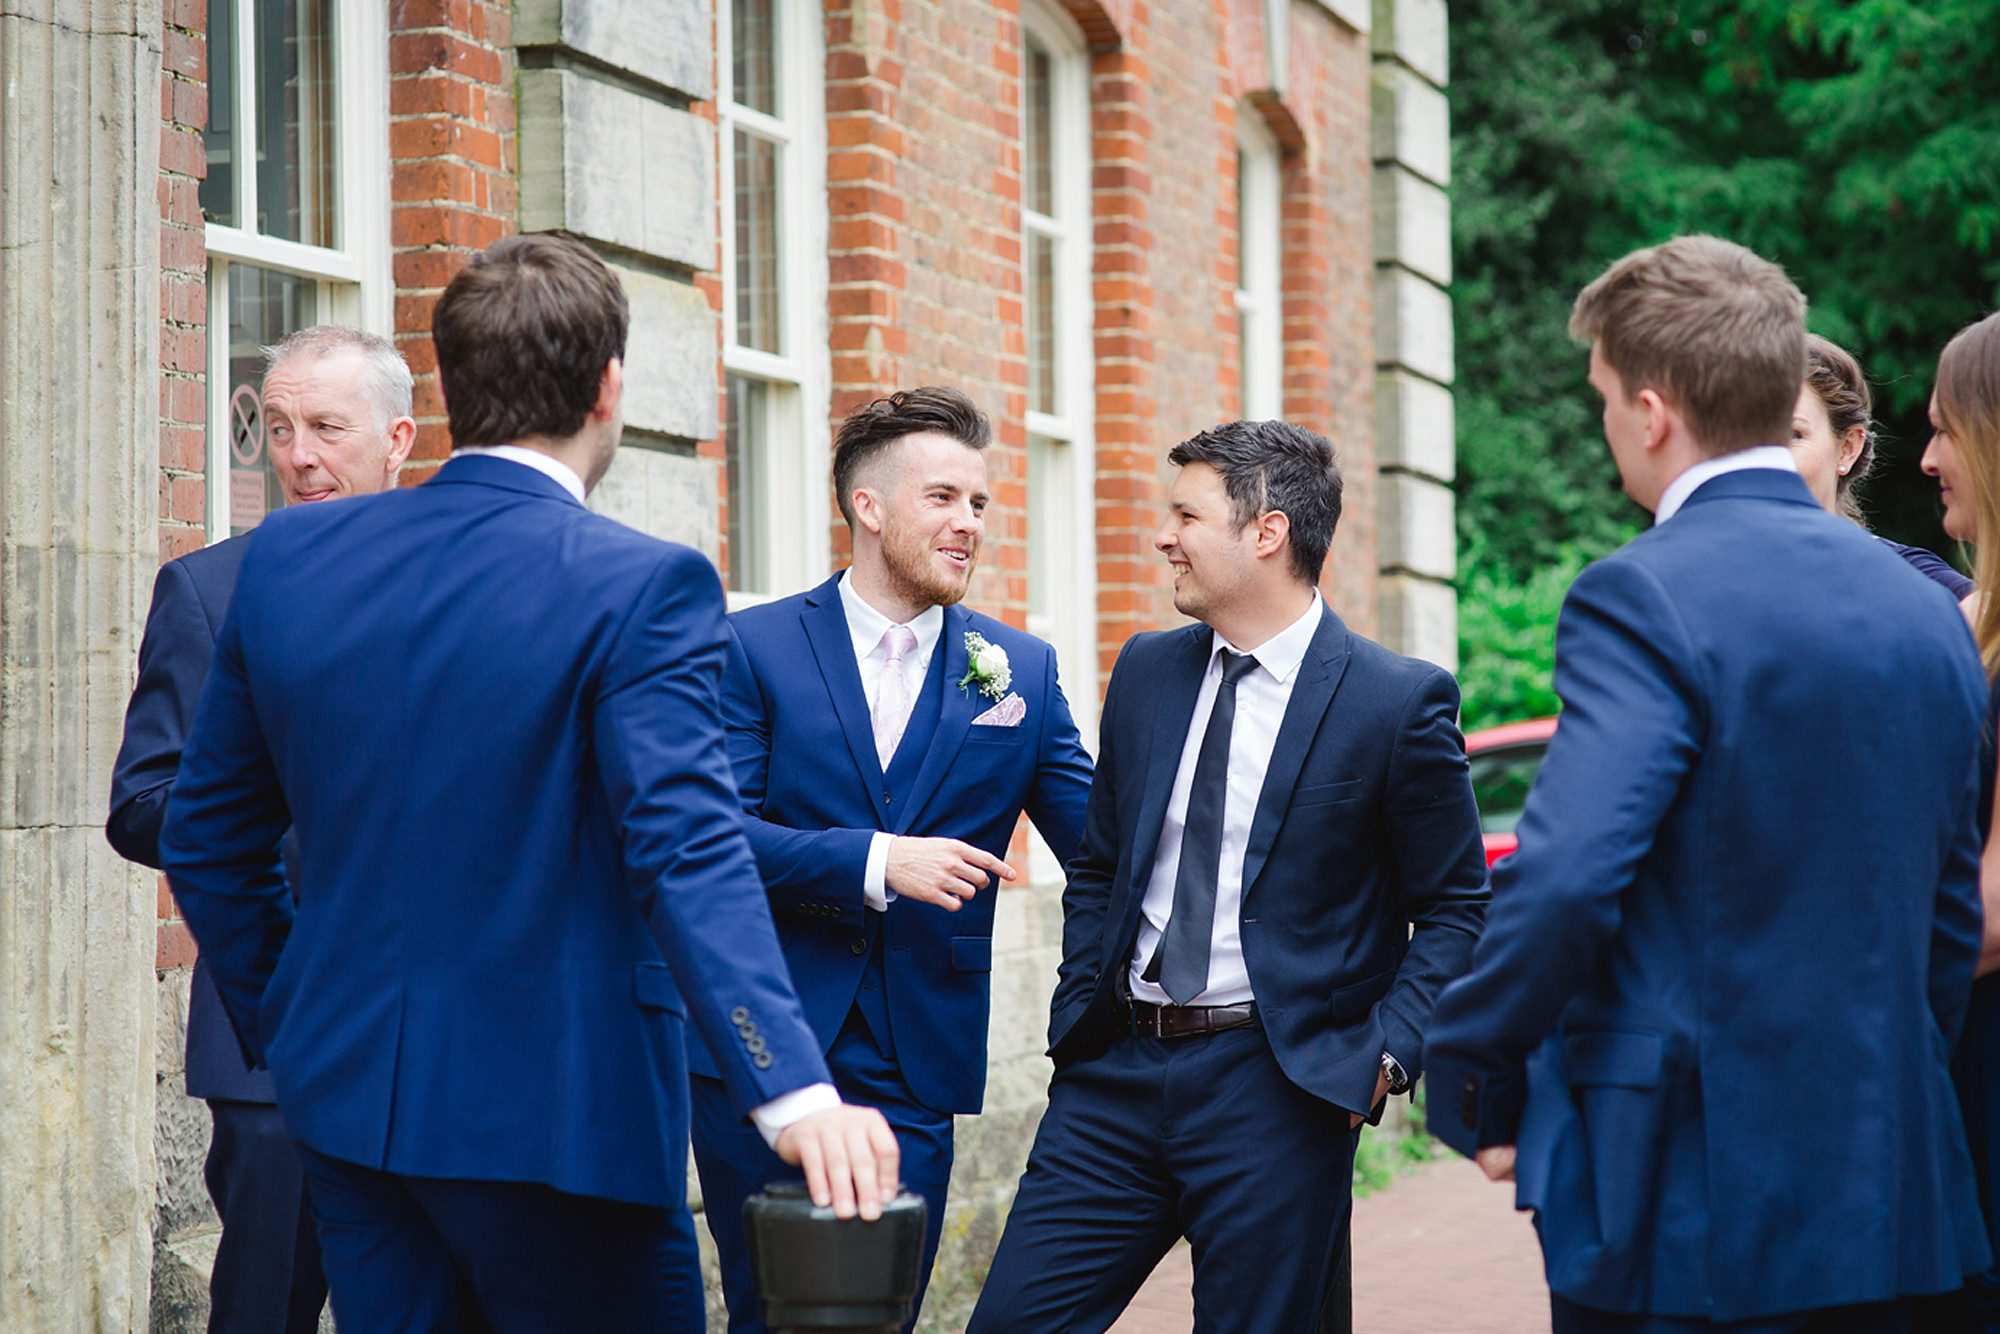 Old Greens Barn Newdigate wedding photography best men at horsham town hall